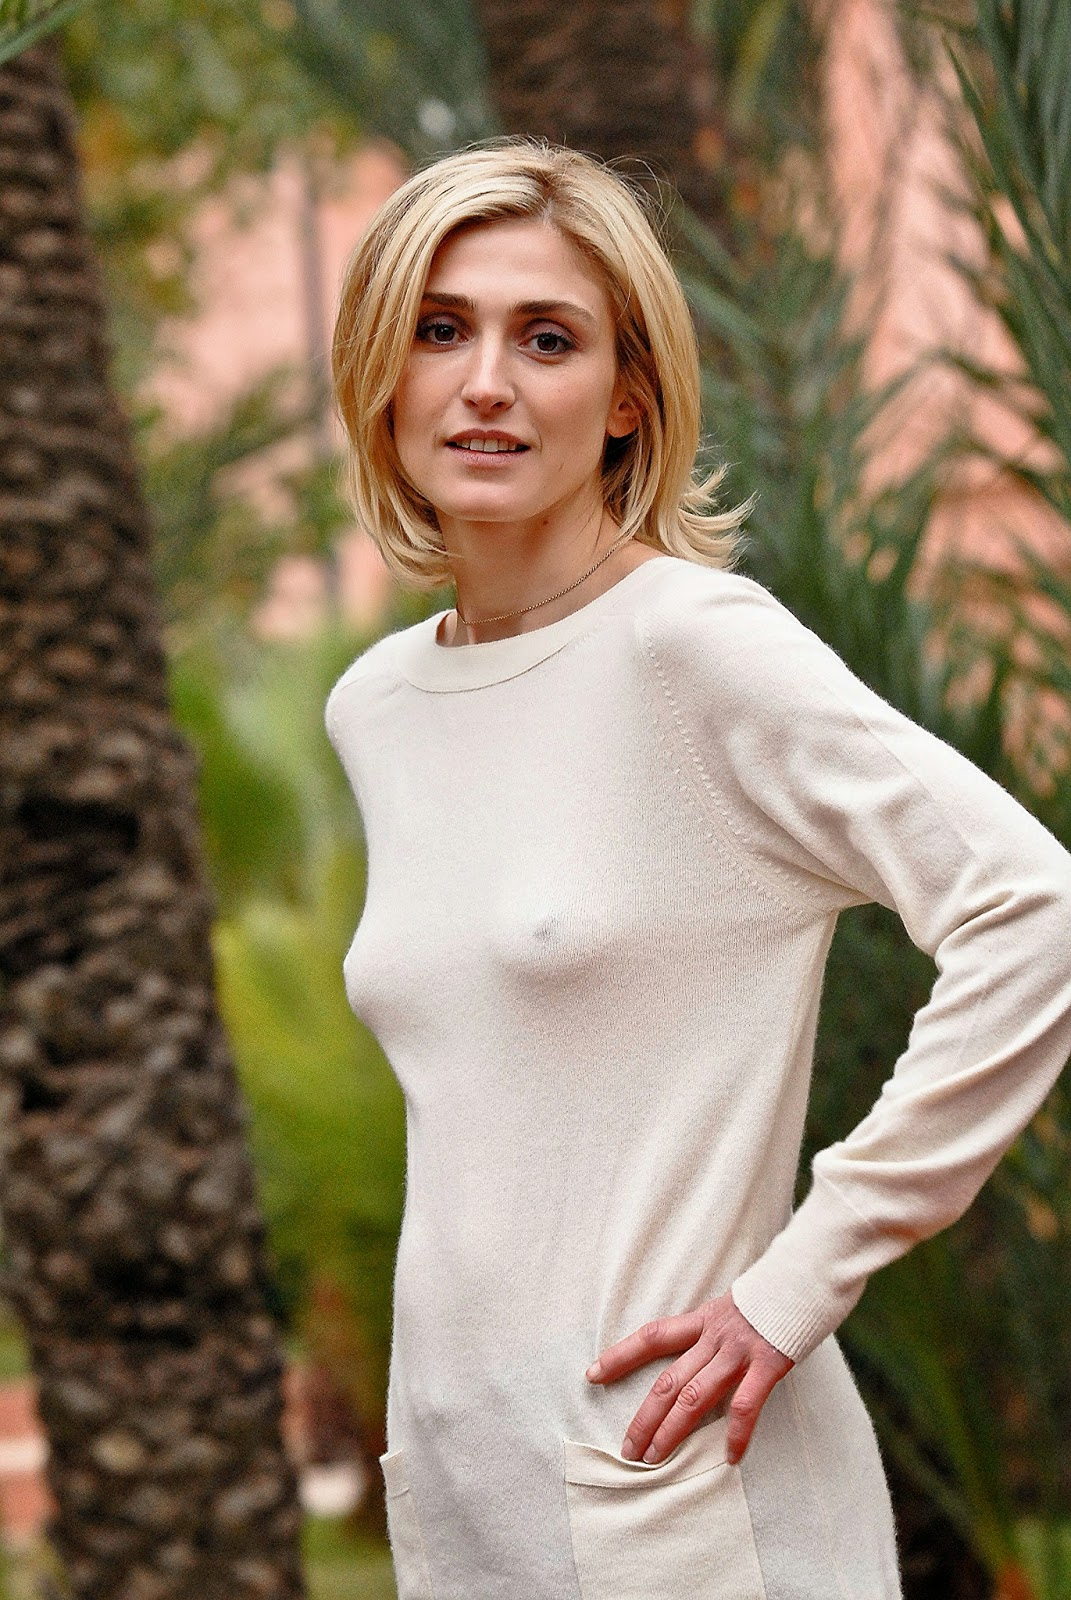 Can find Women naked french beaches brilliant idea